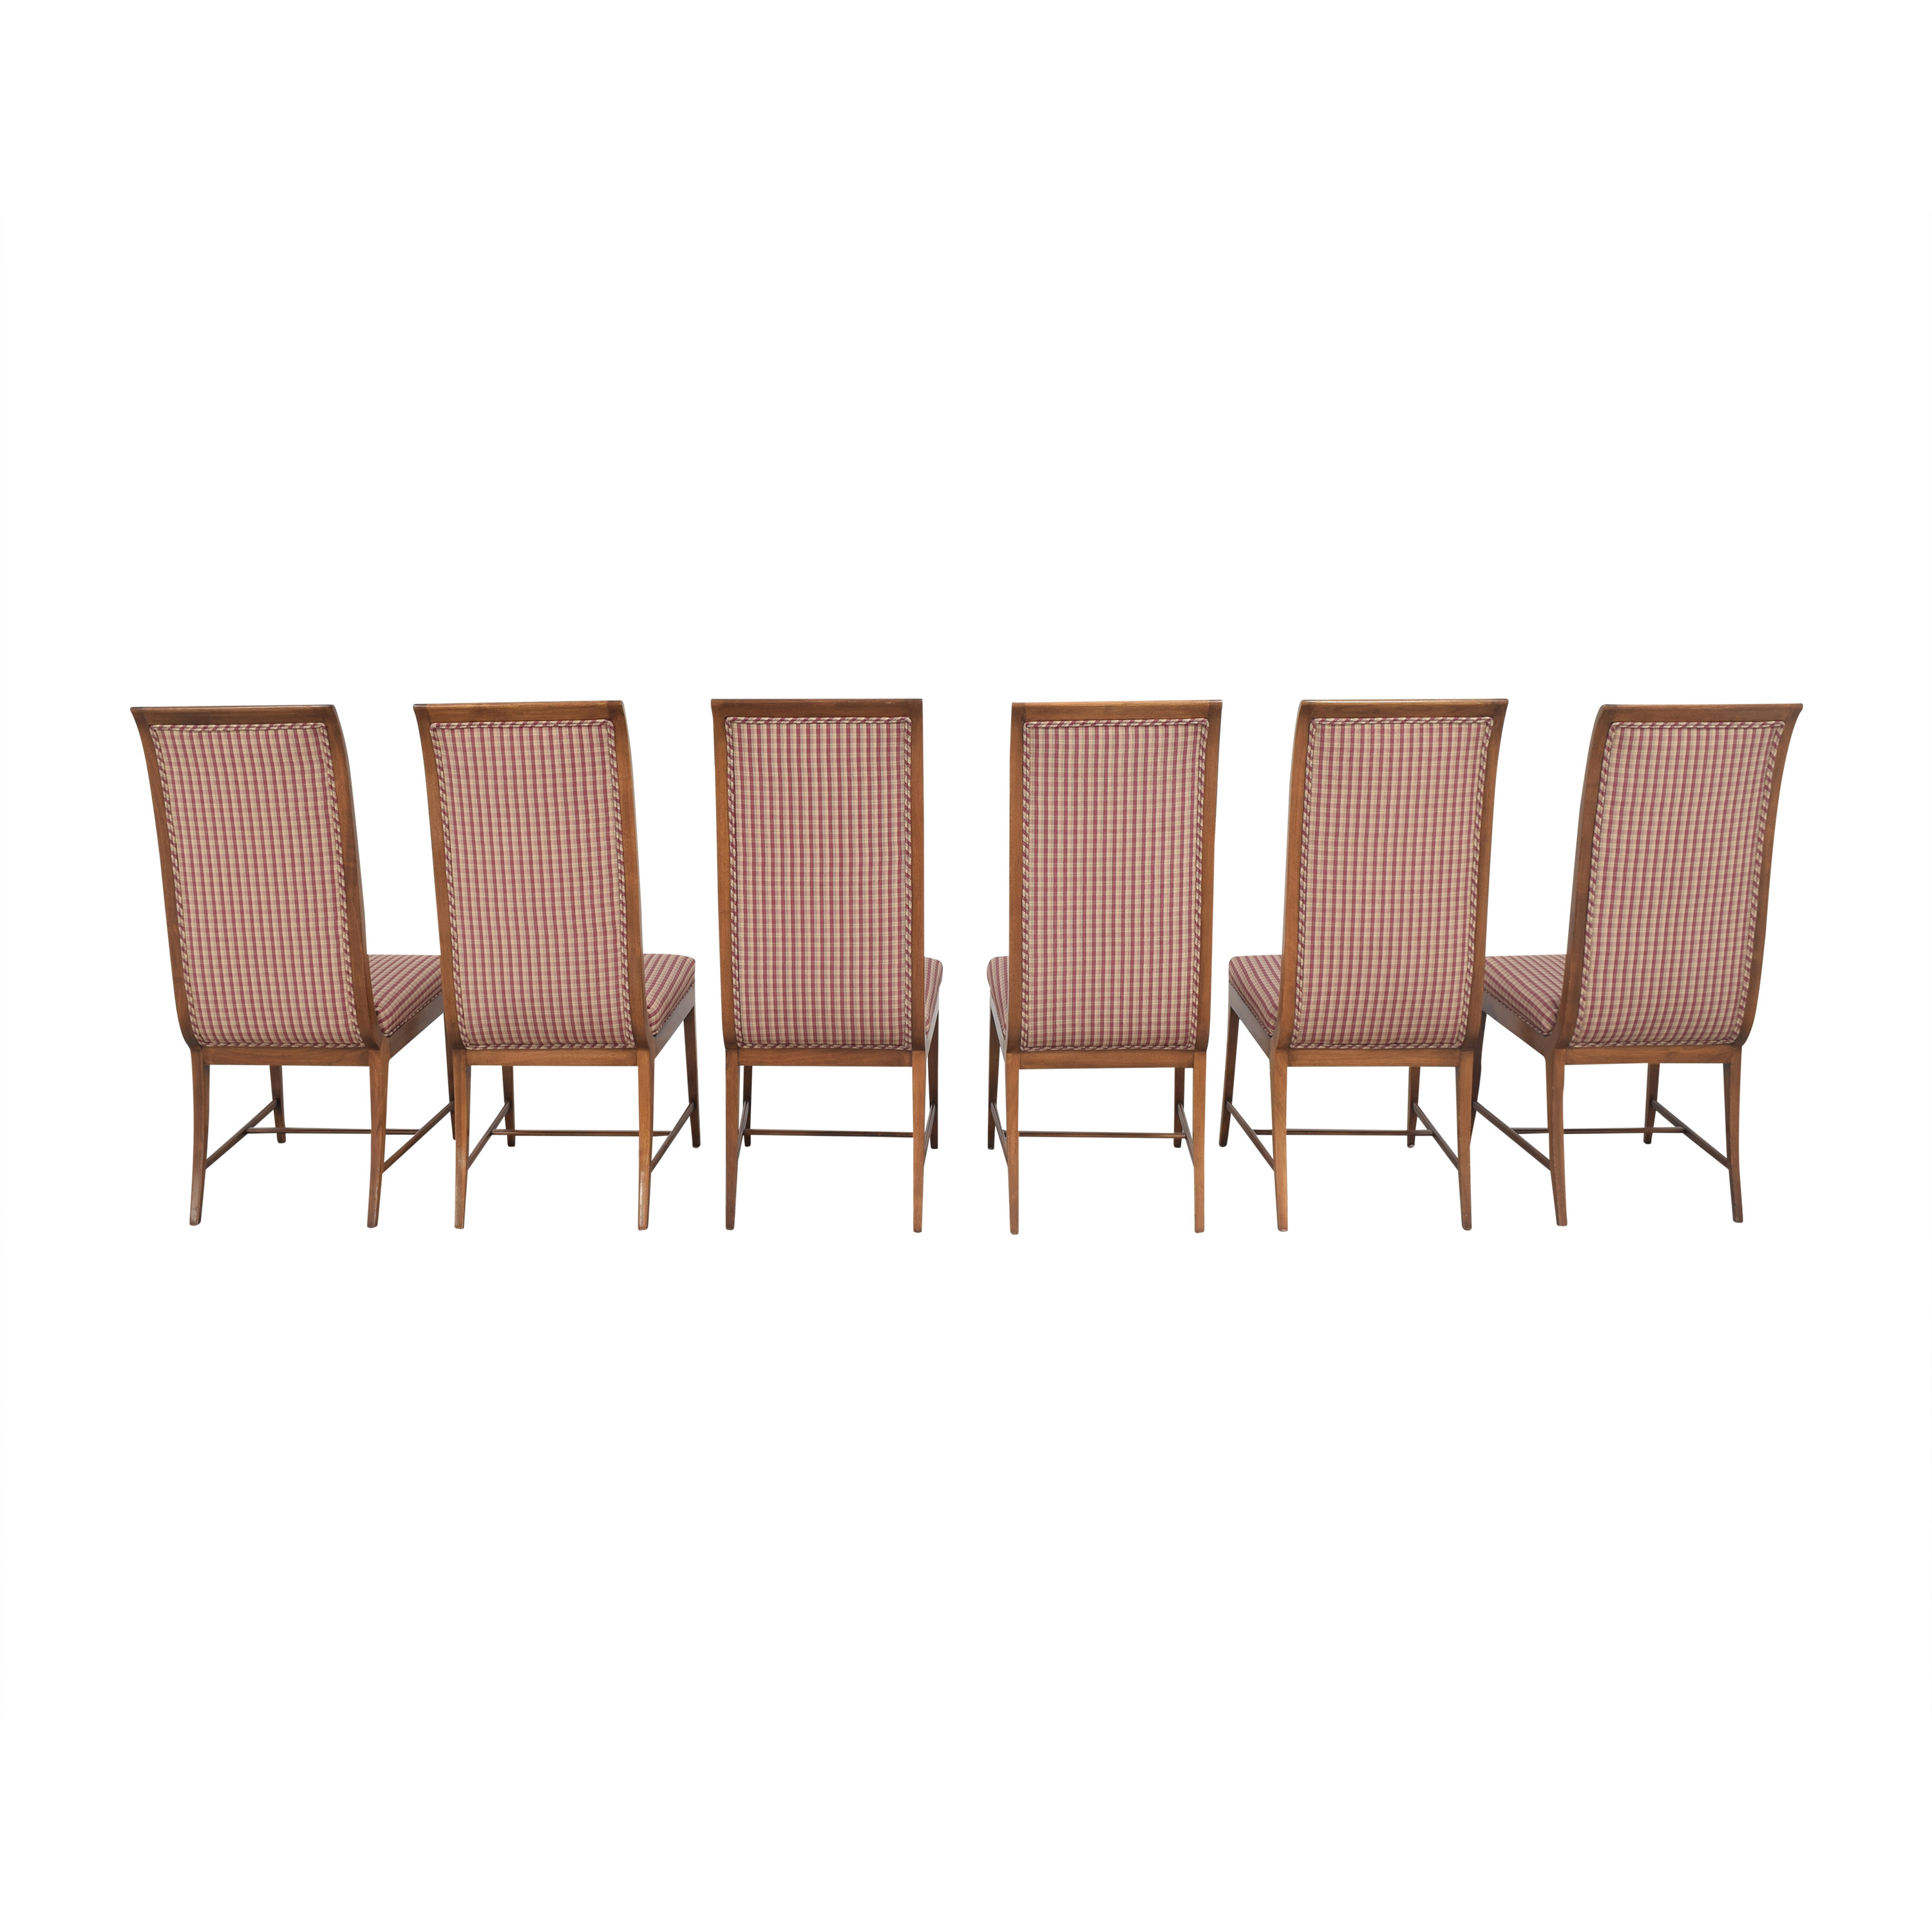 Baker Furniture Baker Furniture High Back Dining Chairs dimensions